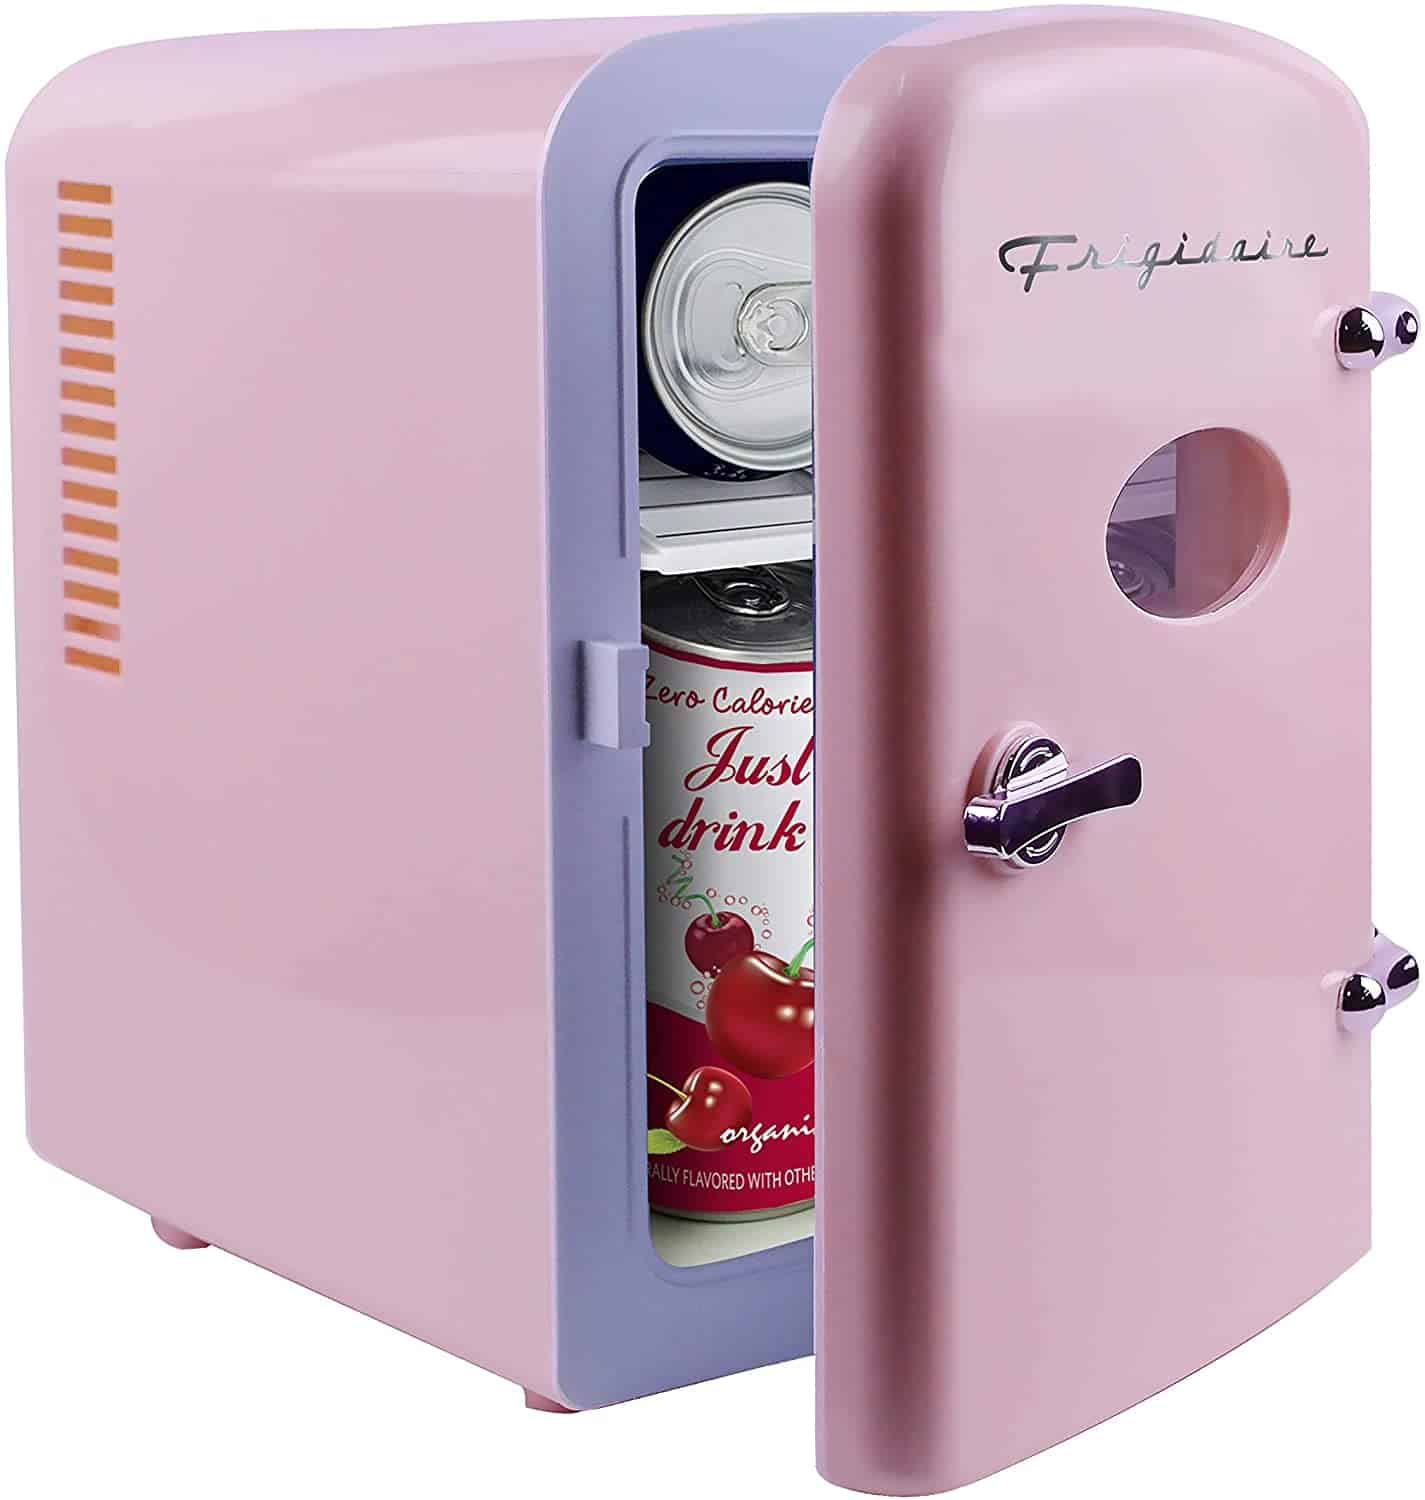 Personal Fridge - gifts for teen girls